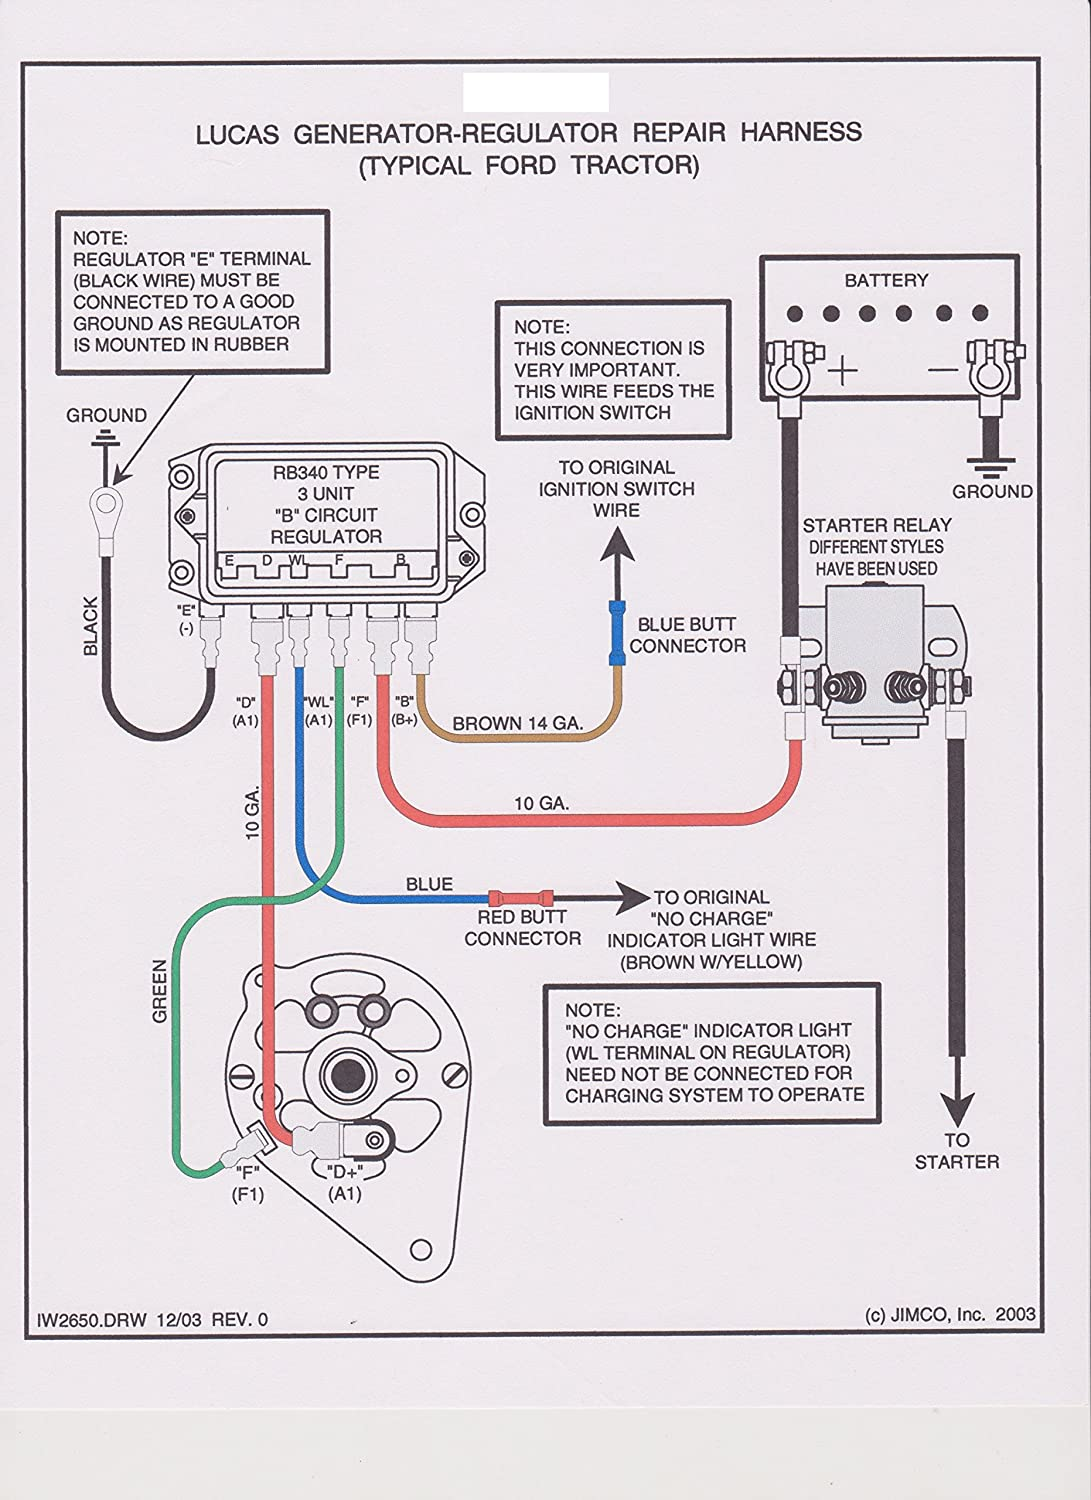 1949 farmall cub tractor wiring diagram for